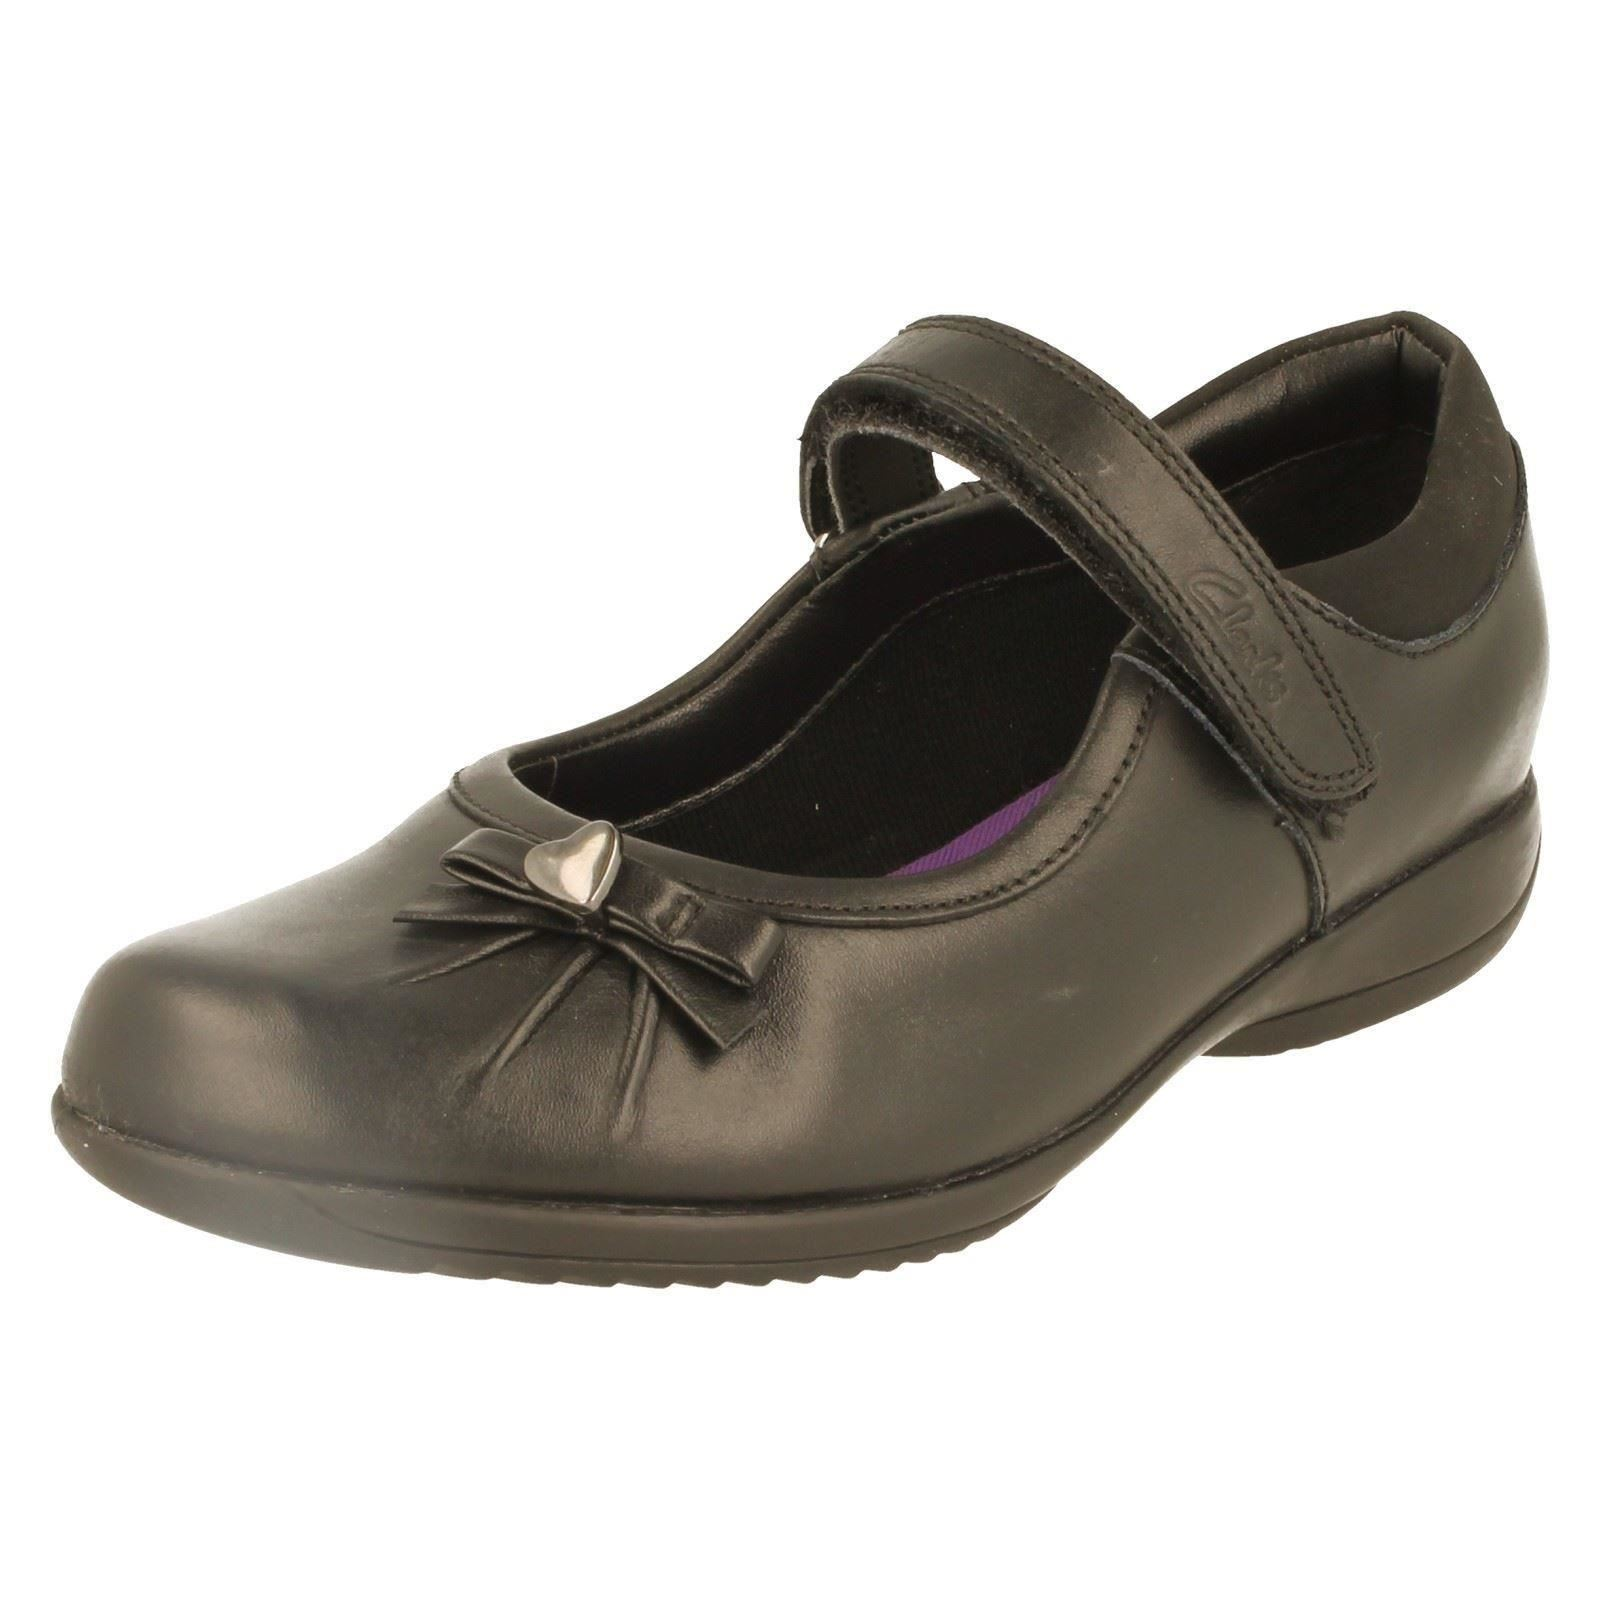 Girls Clarks Formal/School Shoes The Styel - Daisy Gleam